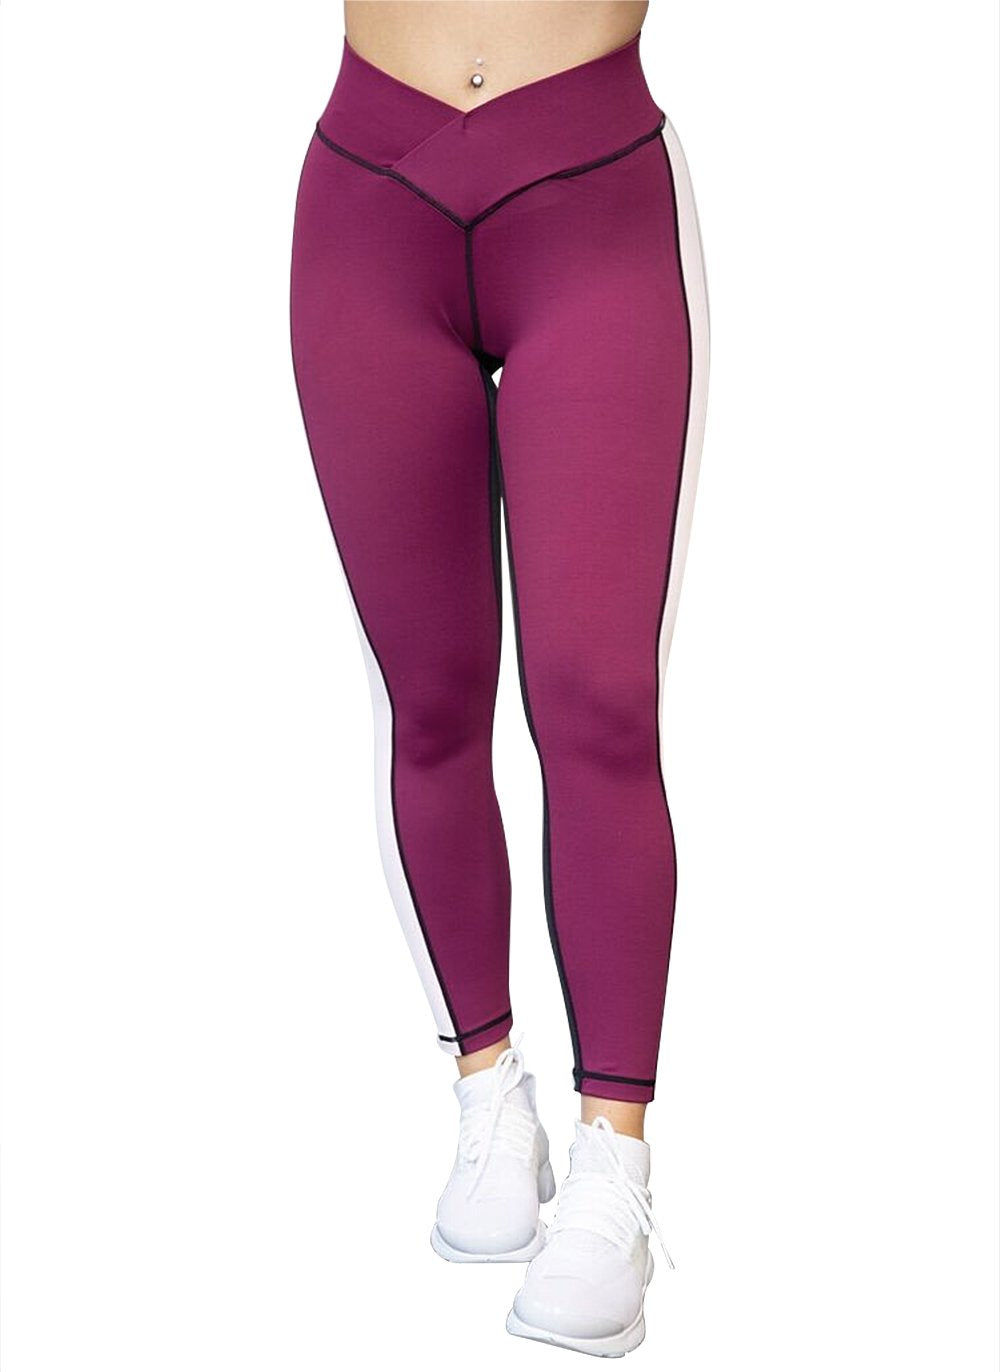 Gym Leggings - Berry & Black - by Bon Bon x